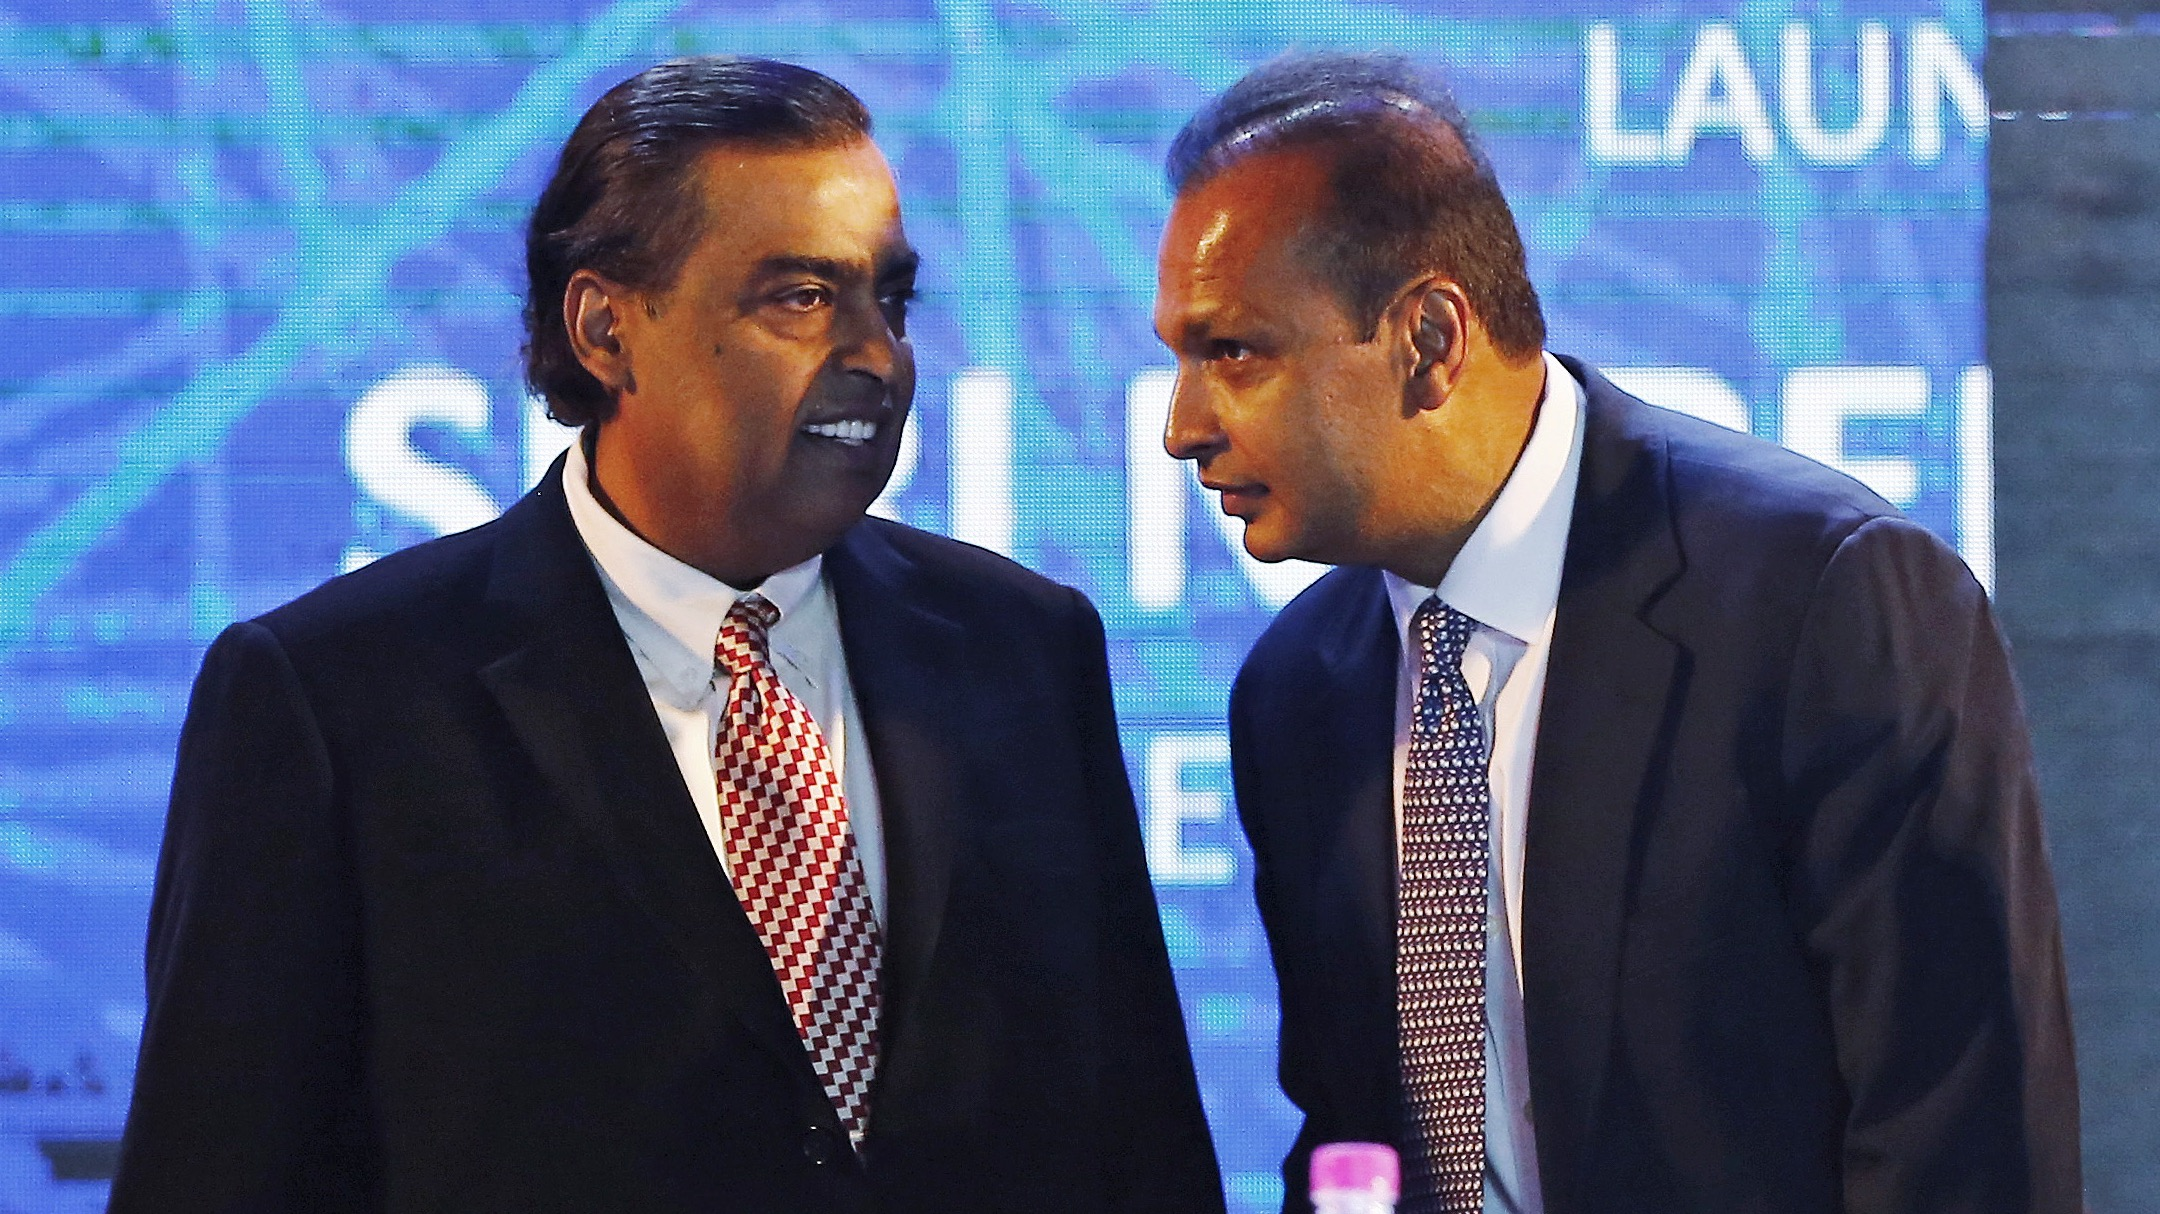 """Anil Ambani (R), chairman of the Reliance Anil Dhirubhai Ambani Group, talks to his brother Mukesh Ambani, chairman of Reliance Industries Limited, during the launch of ìDigital India Weekî in New Delhi, India, July 1, 2015. Prime Minister Narendra Modi urged more companies to make electronic and digital goods on Wednesday, reviving his campaign promise to bridge India's digital divide backed by over $70 billion in investment pledges. Launching a """"Digital India Week"""" aimed at popularising the government's push to connect 250,000 villages by 2019, Modi spoke of the need to boost local manufacturing of electronics - the country's largest import after oil. REUTERS/Adnan Abidi - RTX1IMF2"""